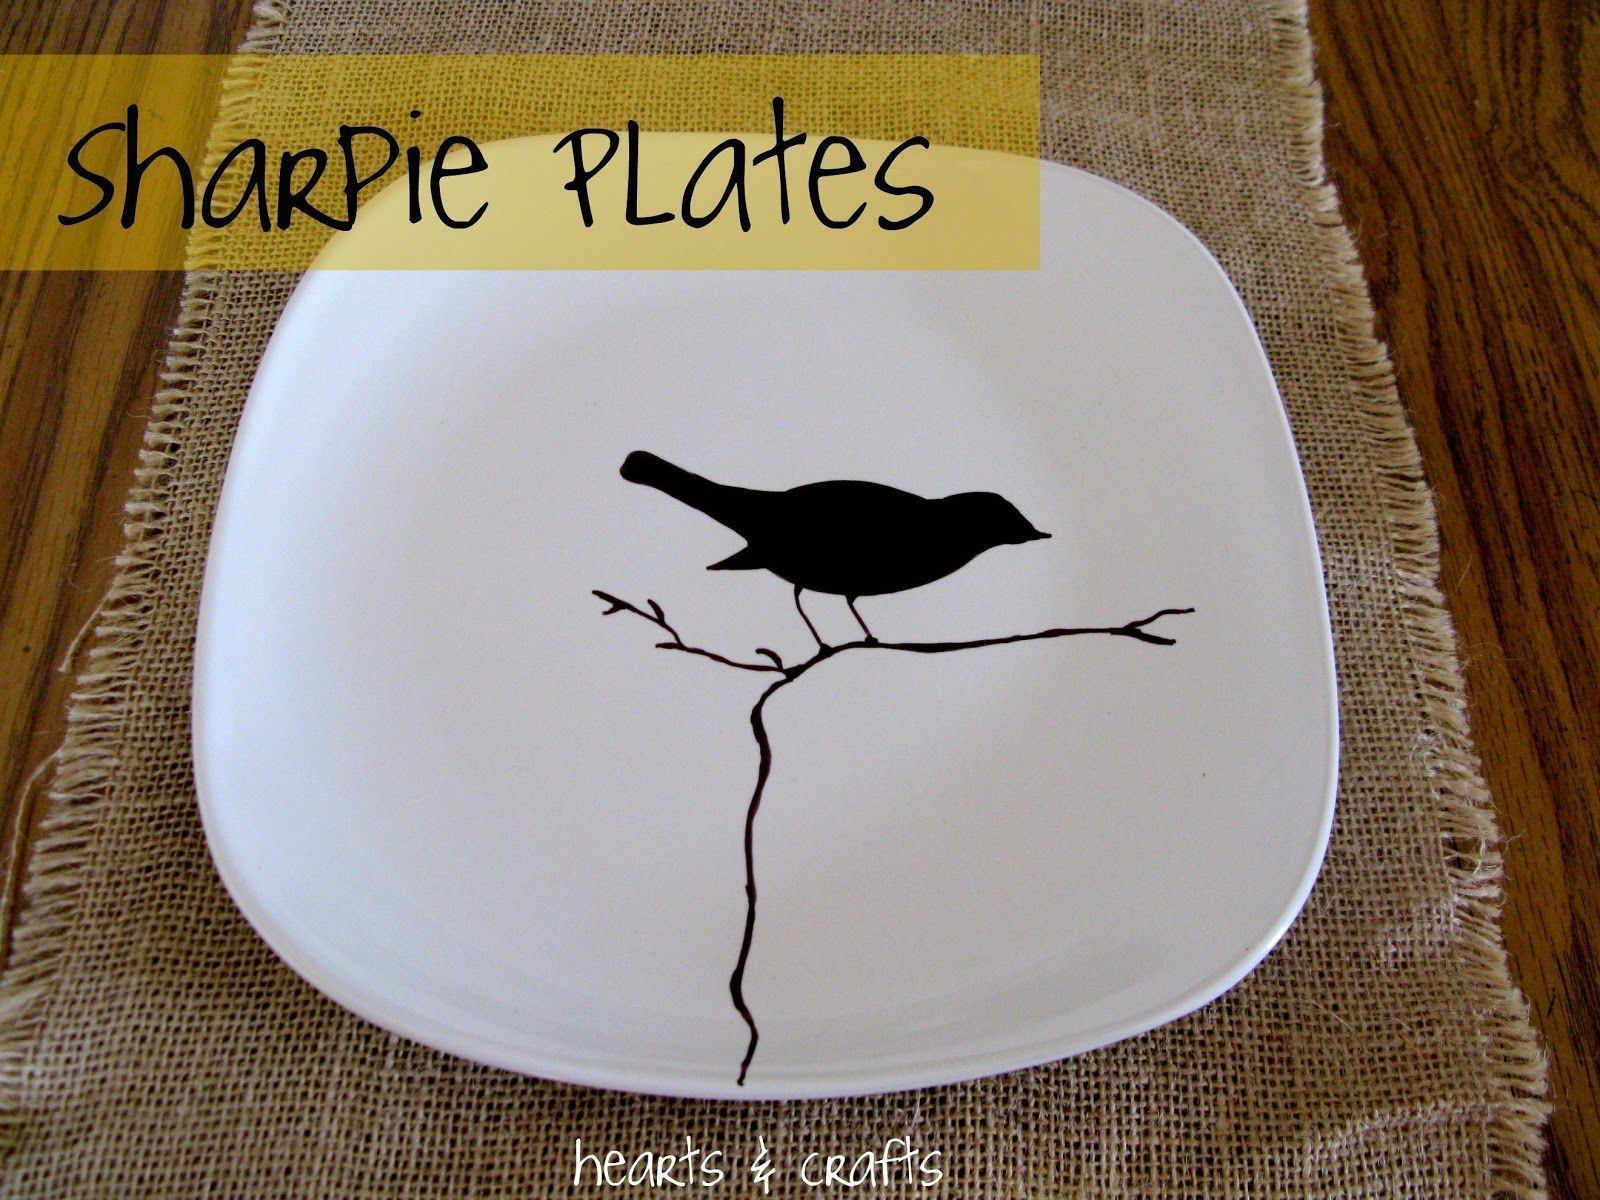 #sharpie #plates #spring #great #table #decor #easy #idea #diy #foreasy DIY sharpie plates - great for idea for Spring table decor! #sharpieplates #sharpie #plates #spring #great #table #decor #easy #idea #diy #foreasy DIY sharpie plates - great for idea for Spring table decor! #sharpieplates #sharpie #plates #spring #great #table #decor #easy #idea #diy #foreasy DIY sharpie plates - great for idea for Spring table decor! #sharpieplates #sharpie #plates #spring #great #table #decor #easy #idea # #sharpieplates